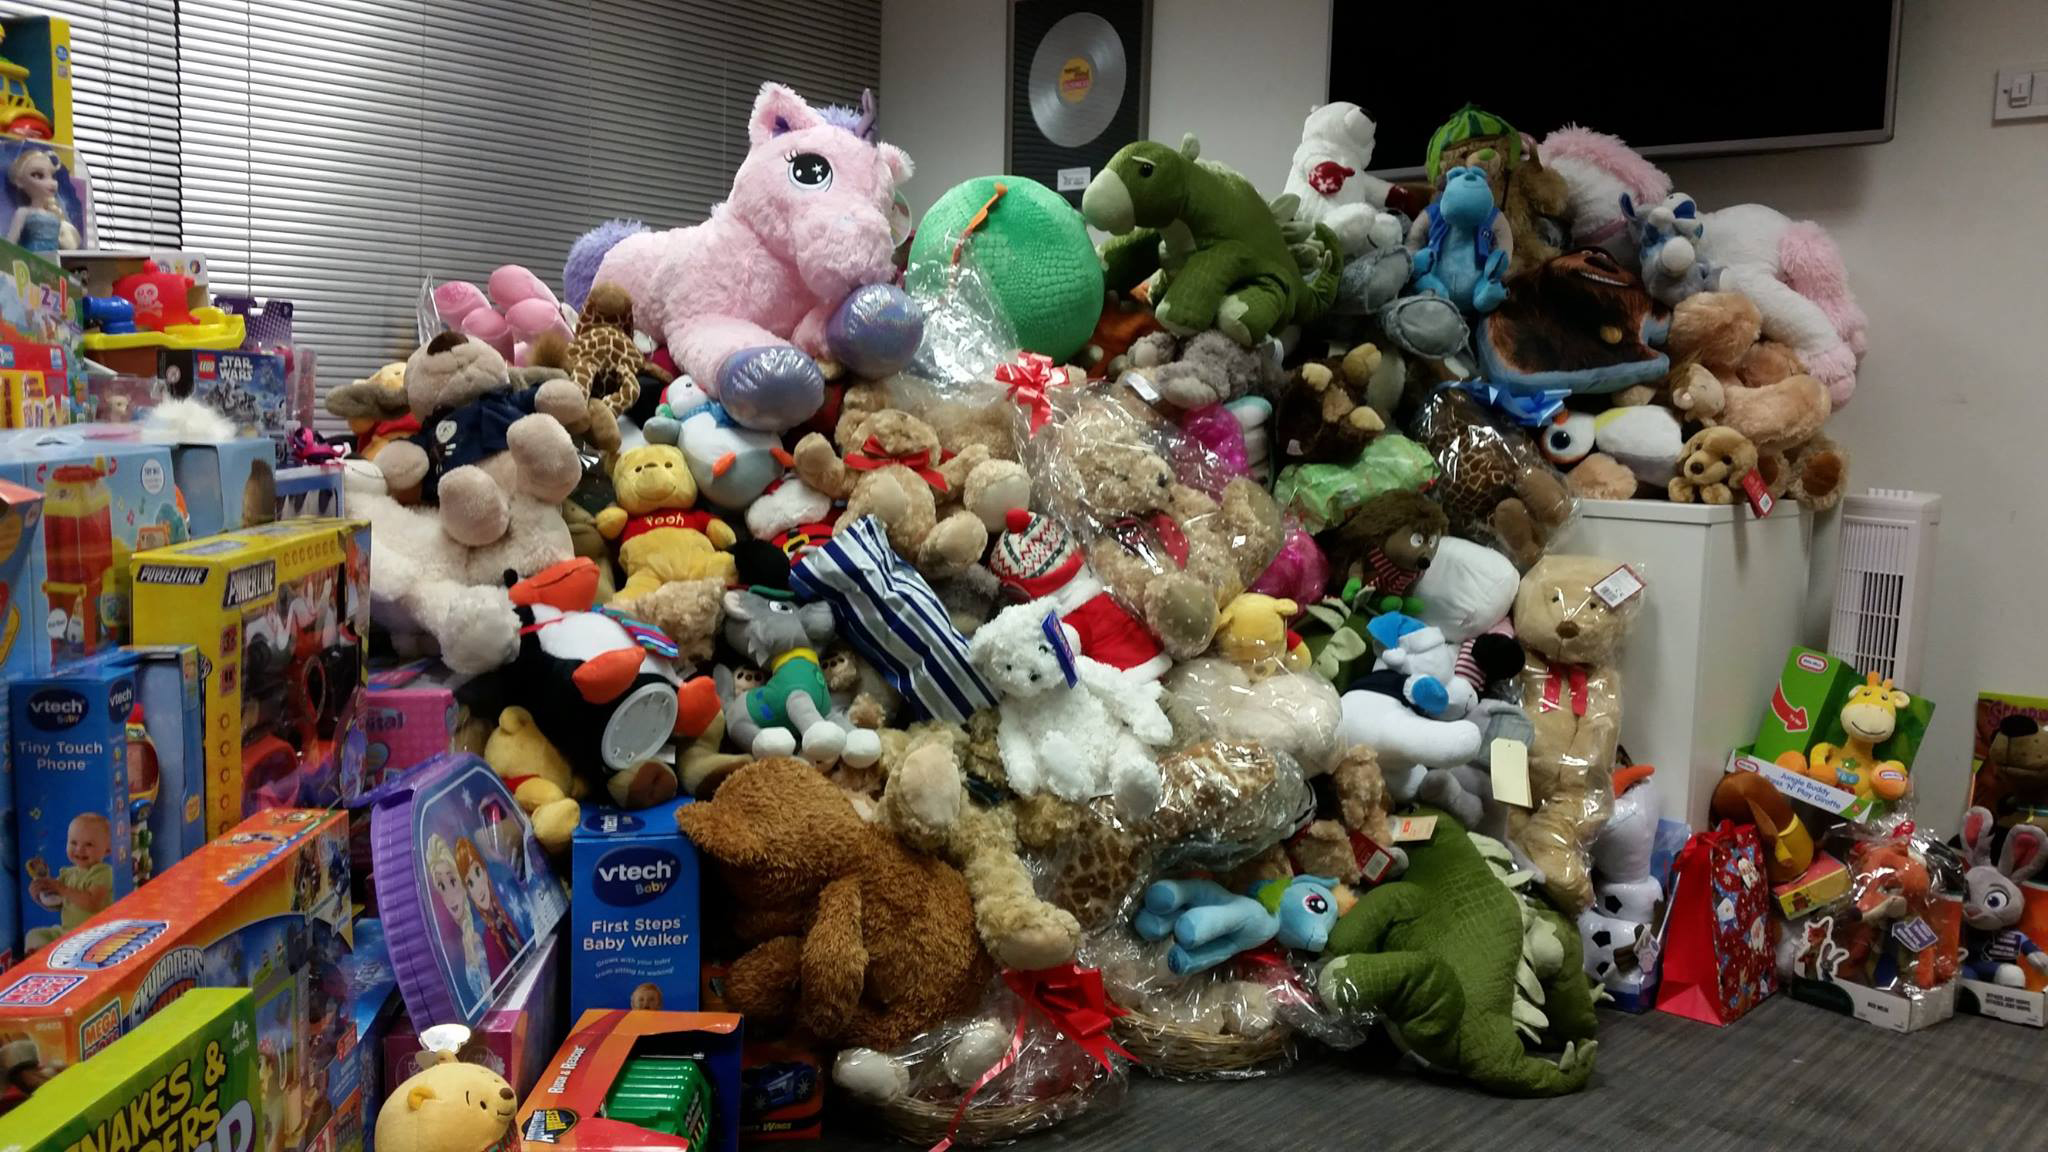 Toys collected for Original 106's appeal.